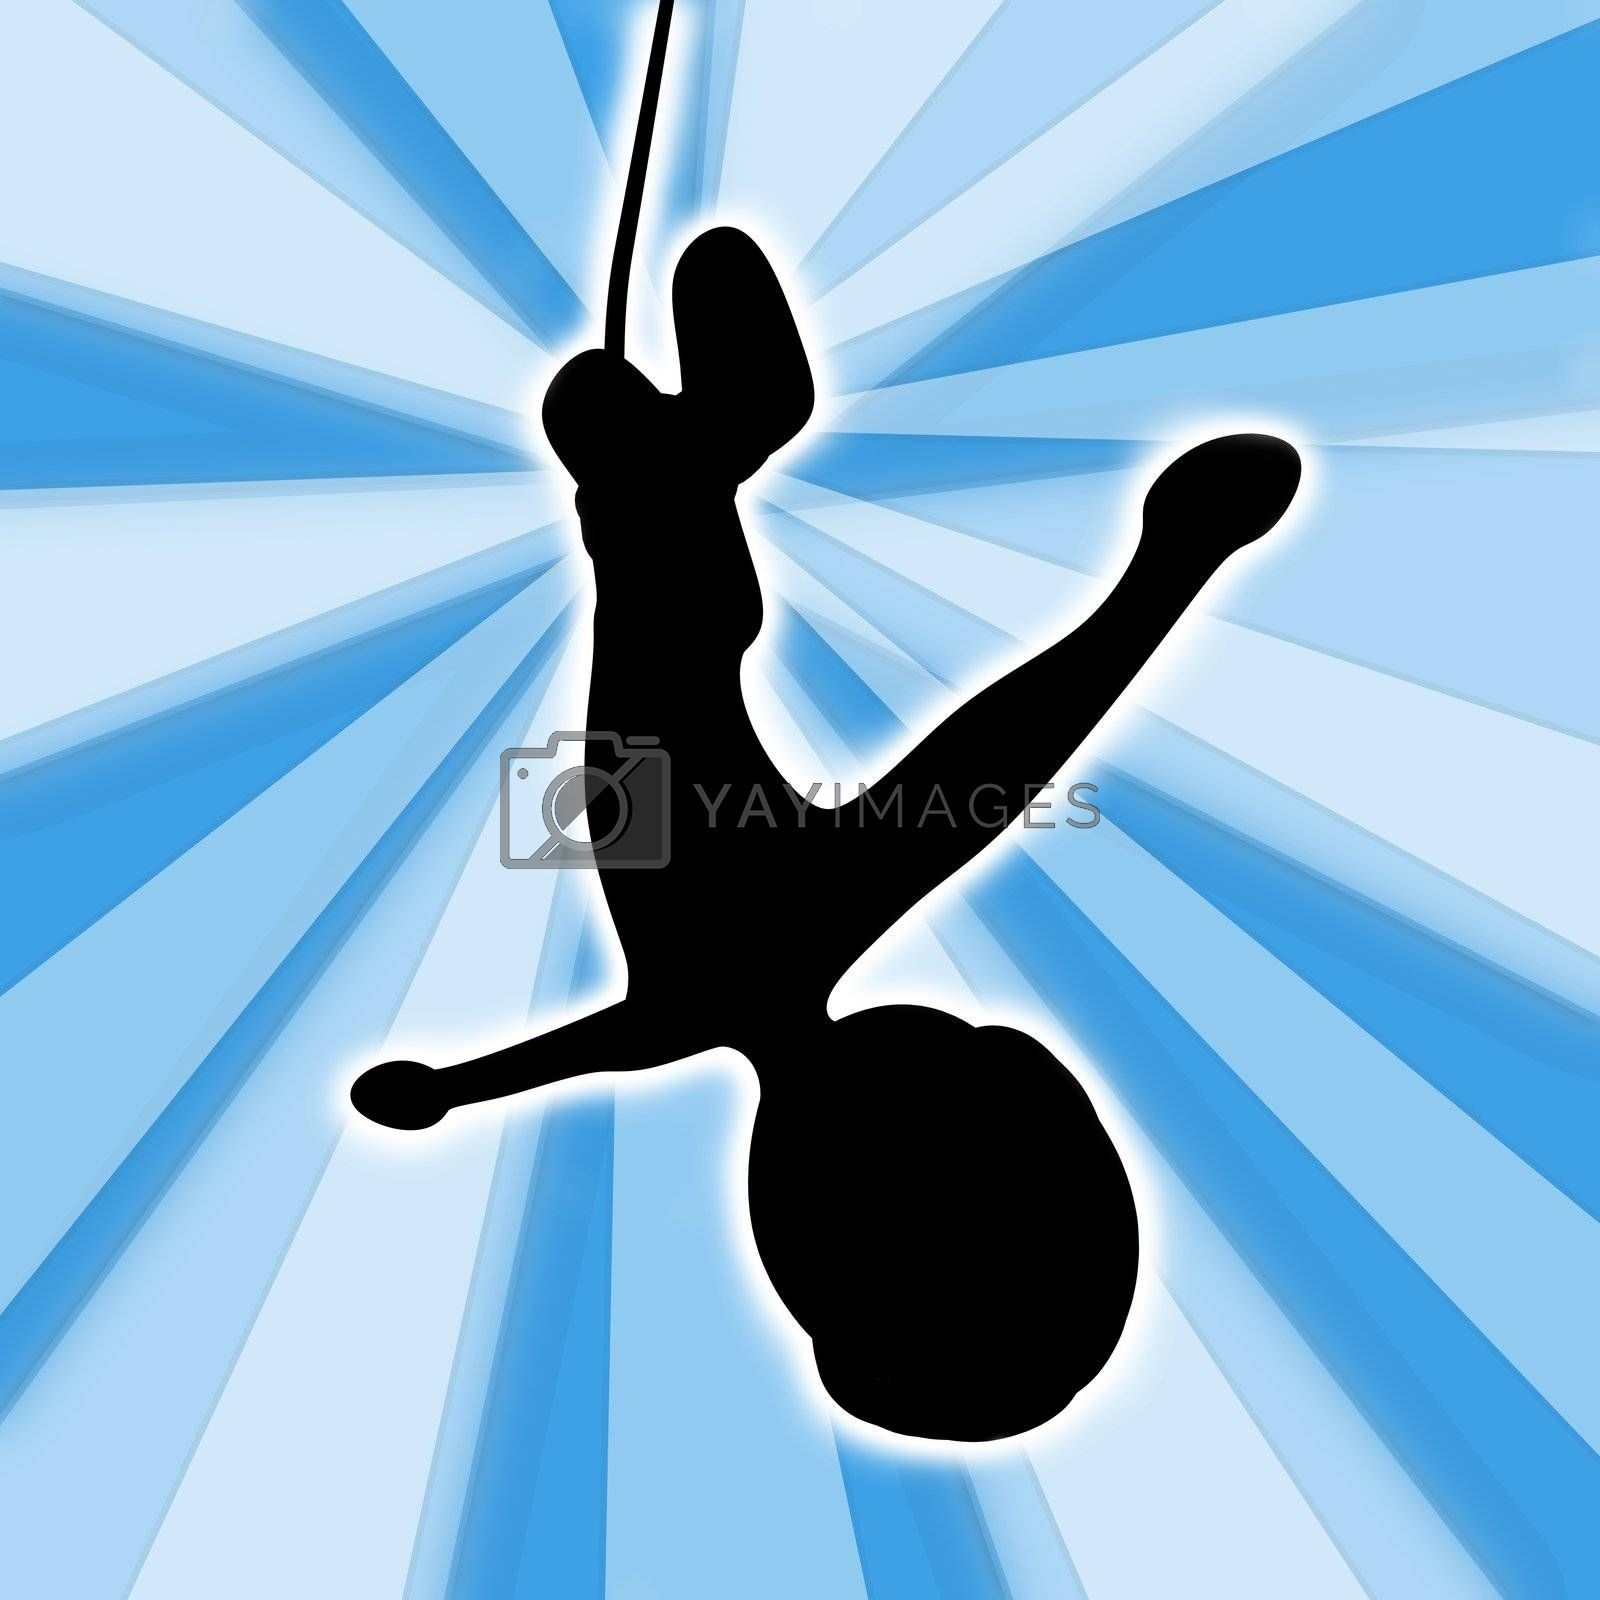 Computer generated image - Bungee Jumping .